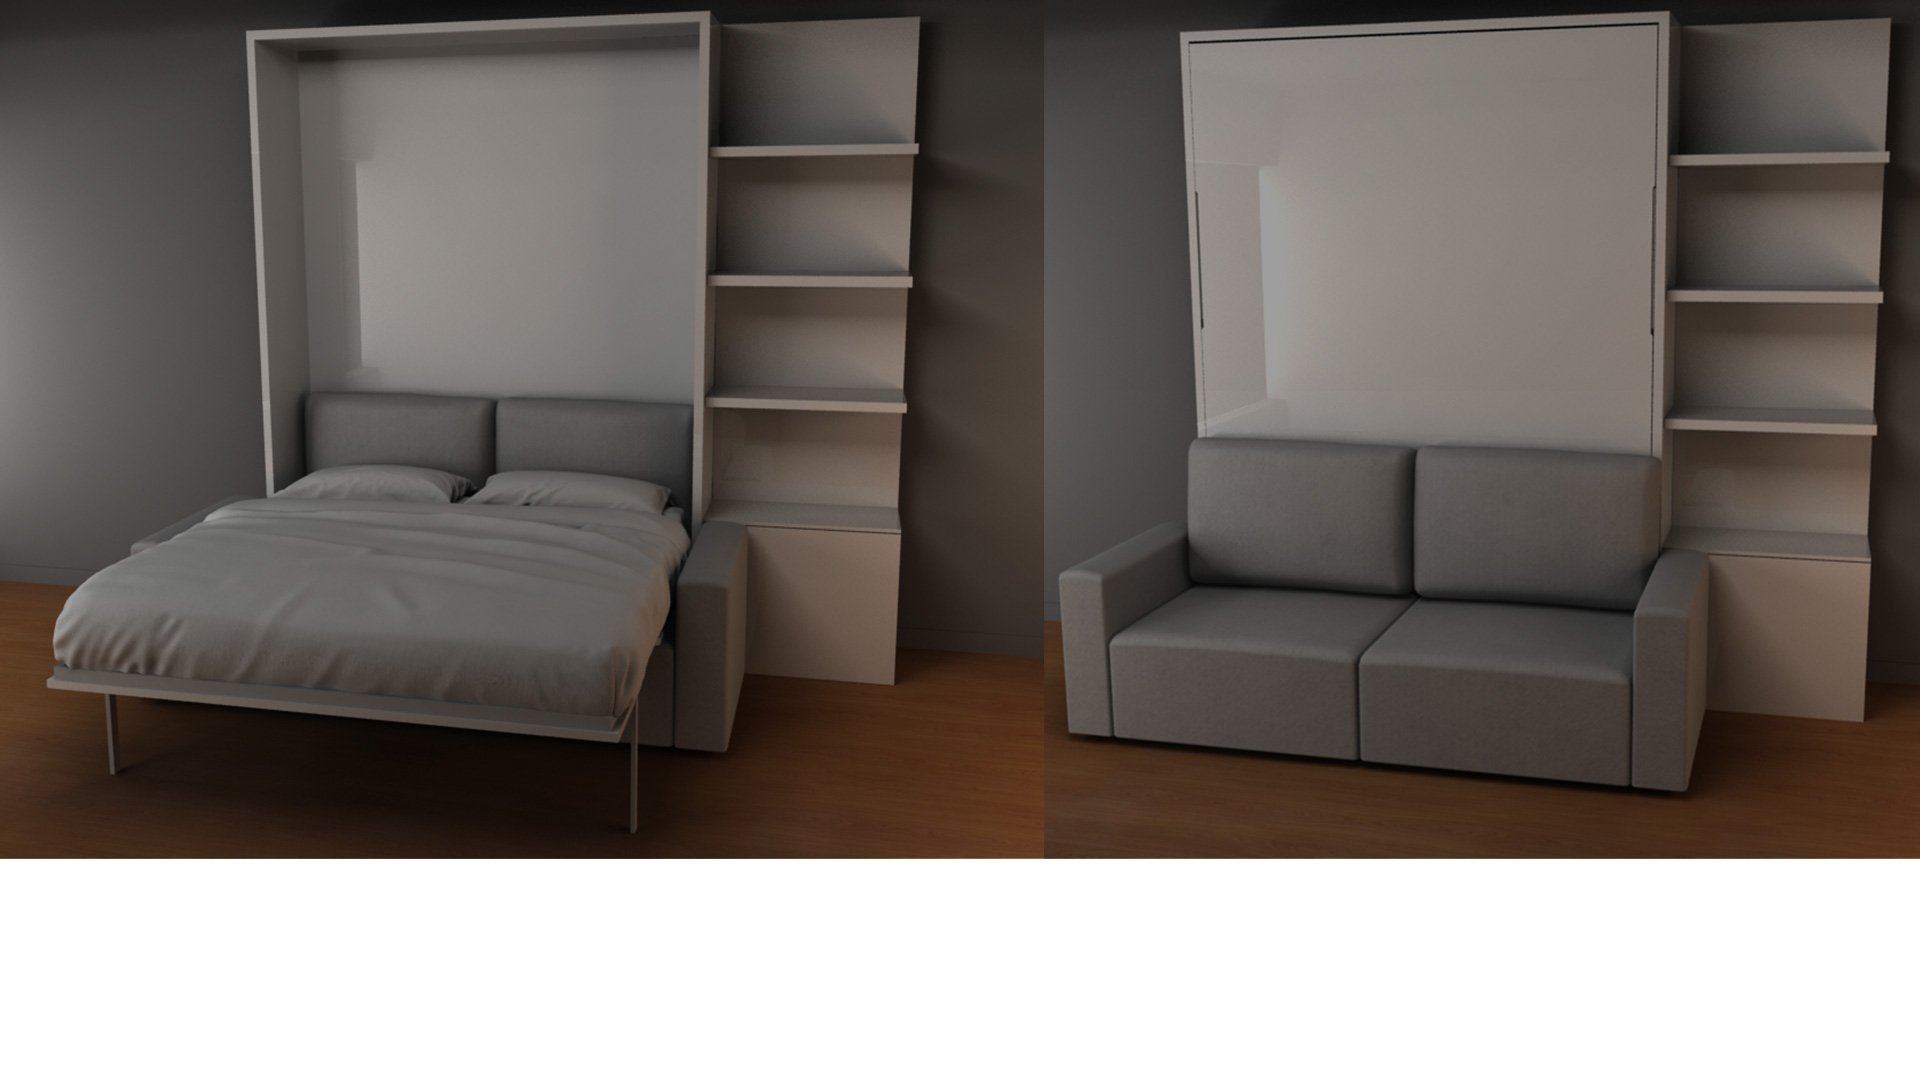 Saving Needs From Vertical And Horizontal Wall Bed Sofa Designs To Compacting Murphysofas Beds With Storage Sectional Wallbed Sofas